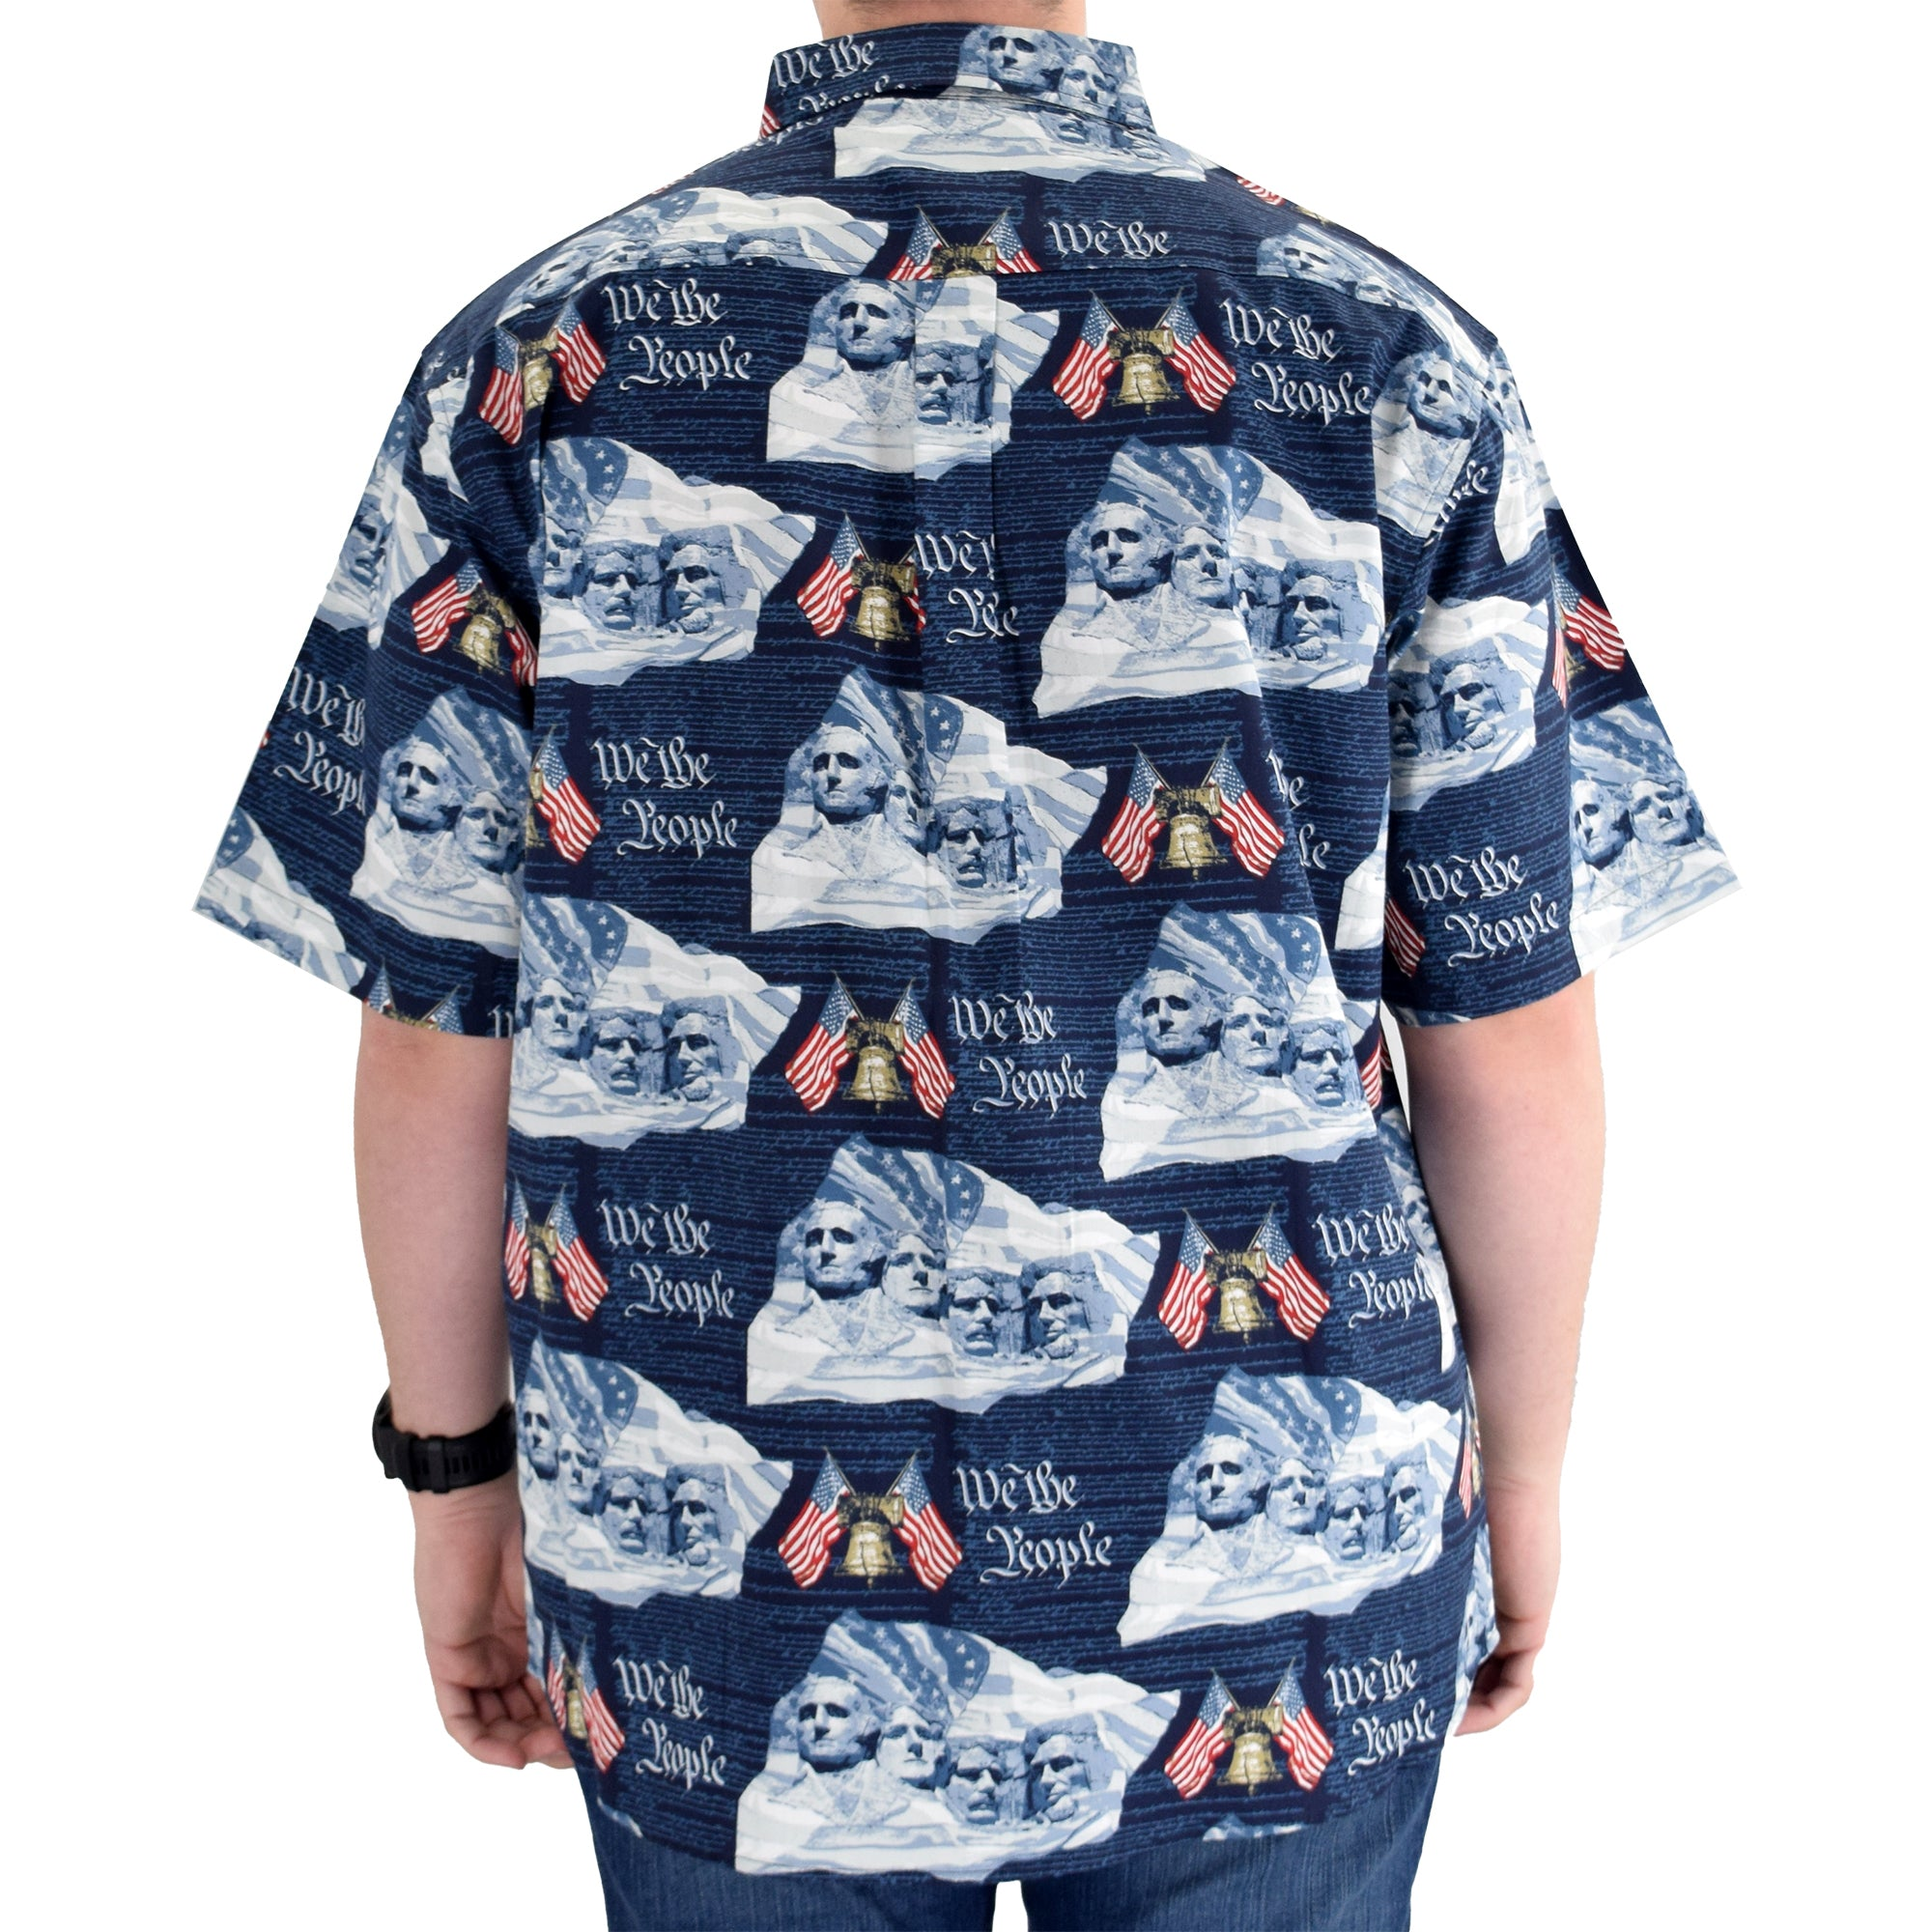 Men's Woven Button-Up Bell & Rushmore Shirt - the flag shirt